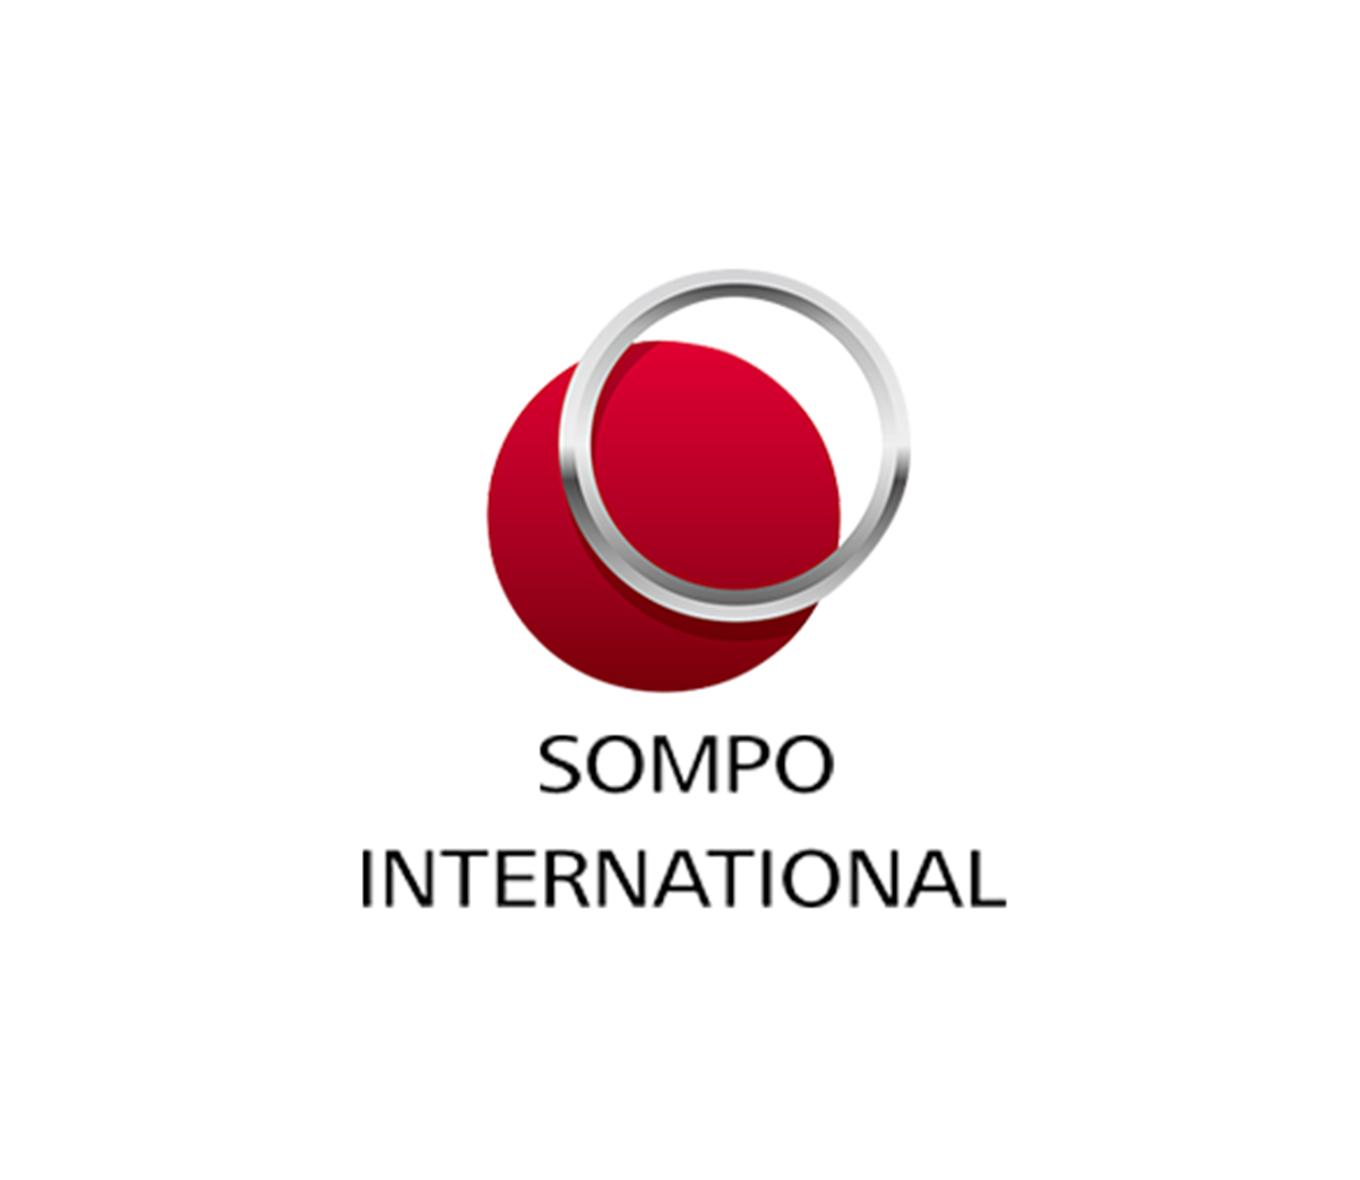 Sompo International Customer Logo